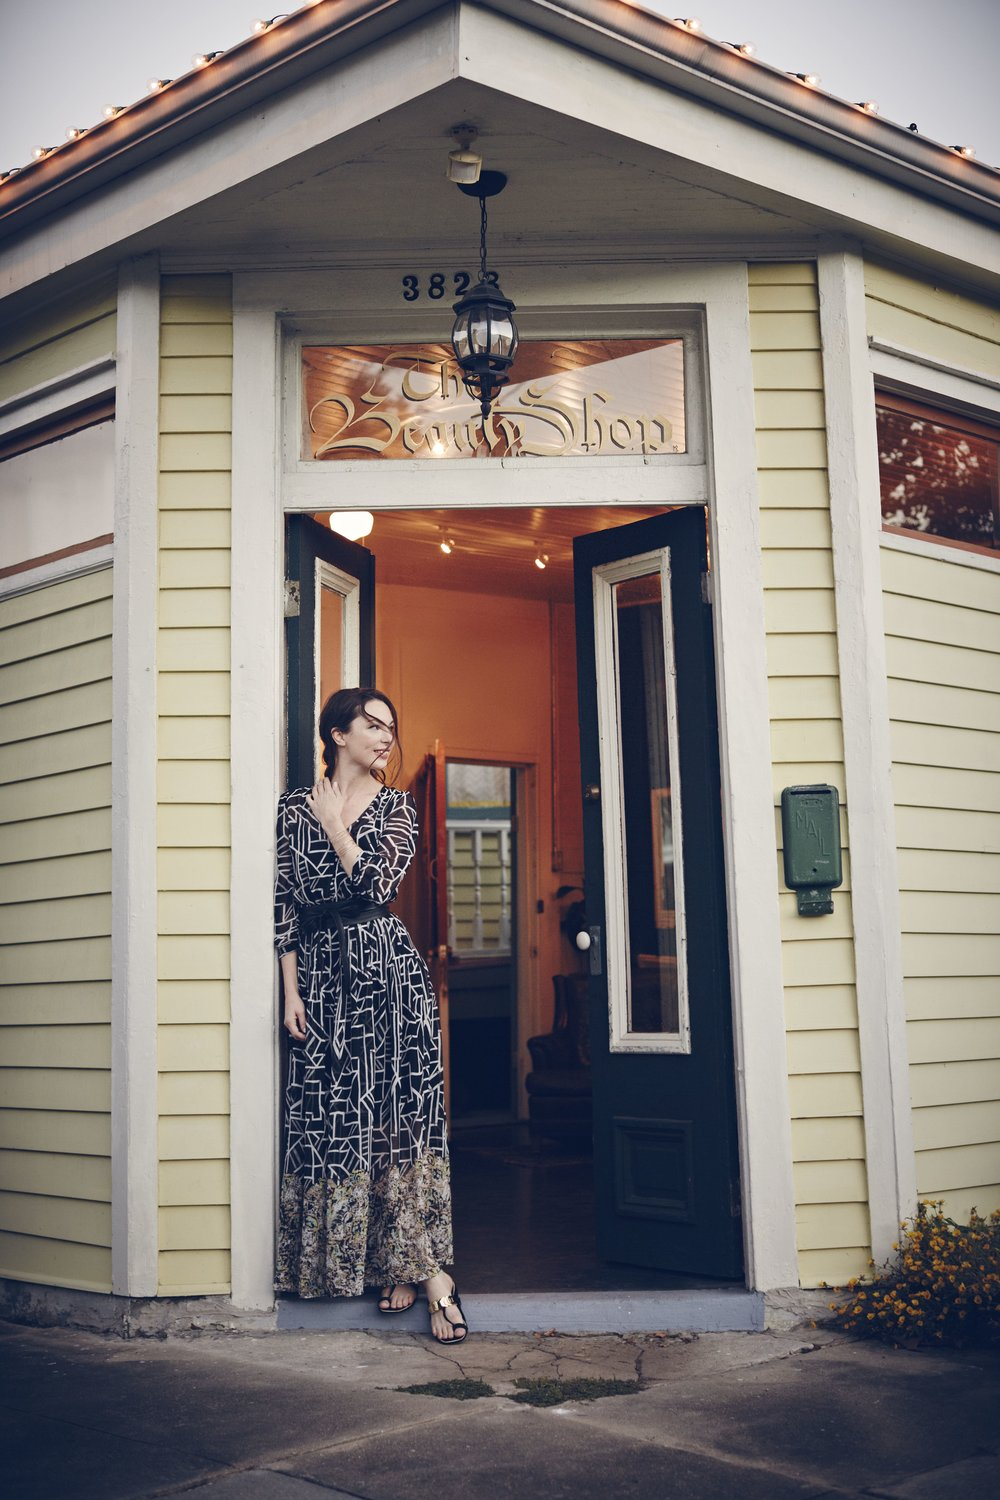 Rebecca Rebouche at the former brick and morter Beauty Shop in New Orleans. Photo by Bettina Lewin for Anthropologie.